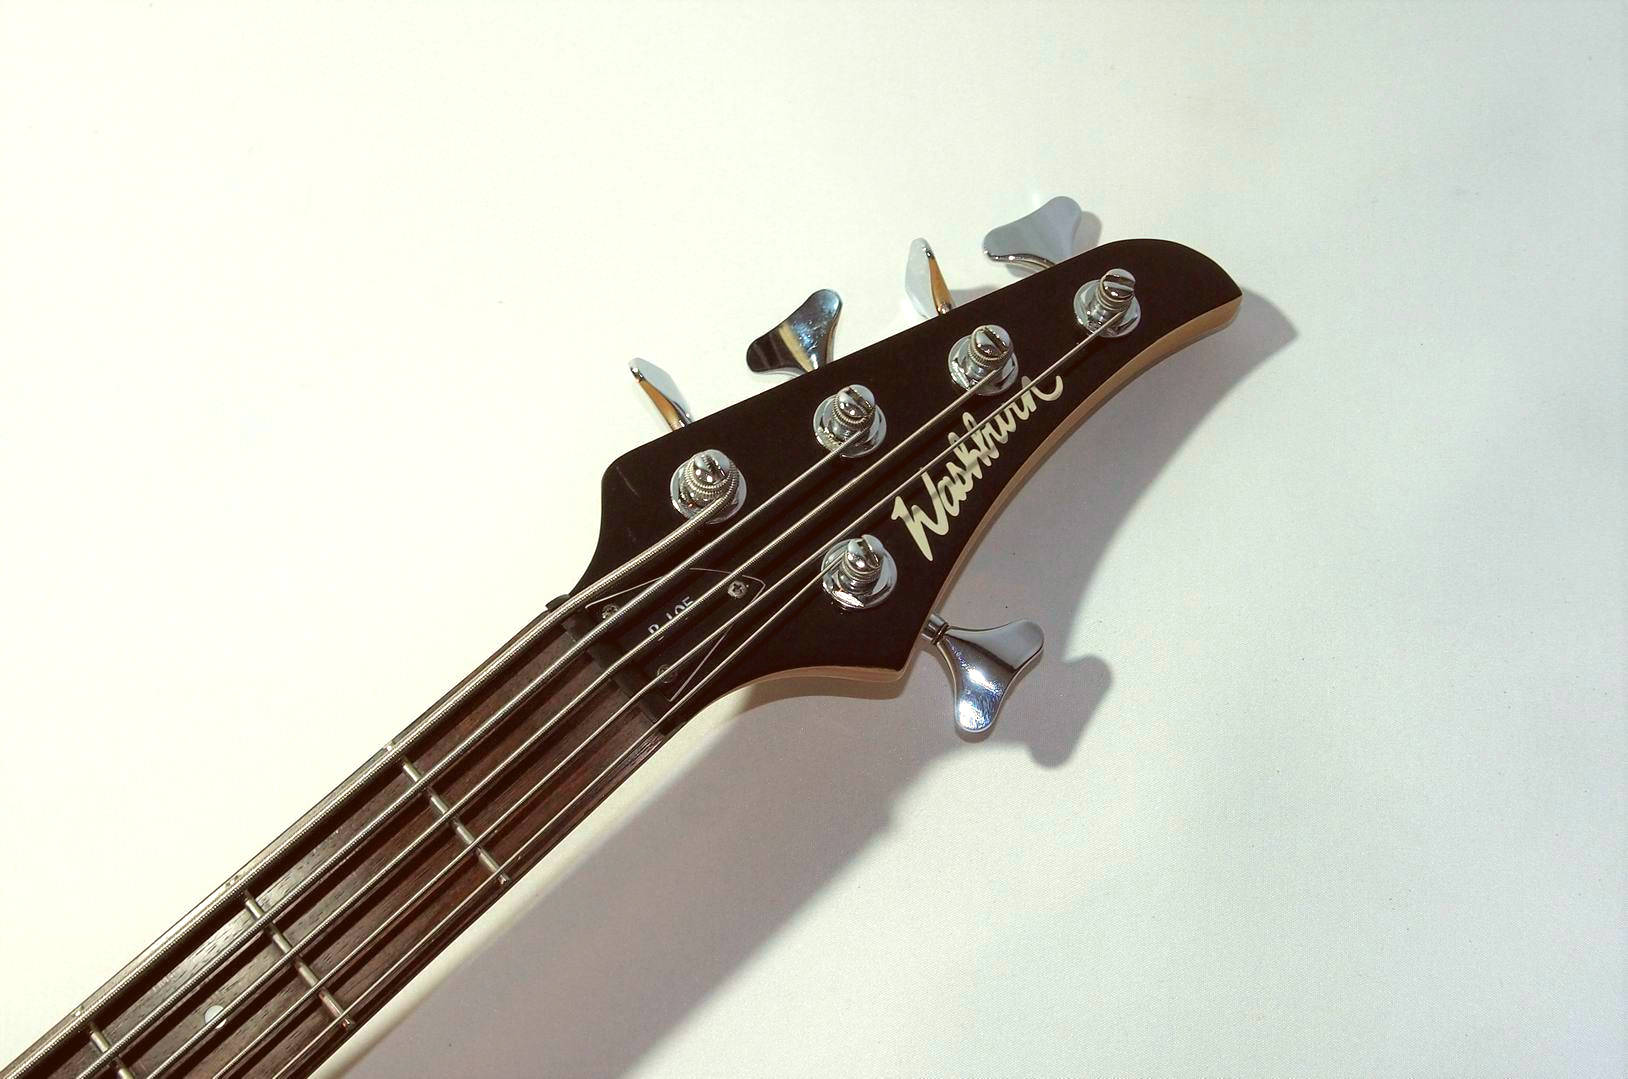 washburn-b105-force - Details